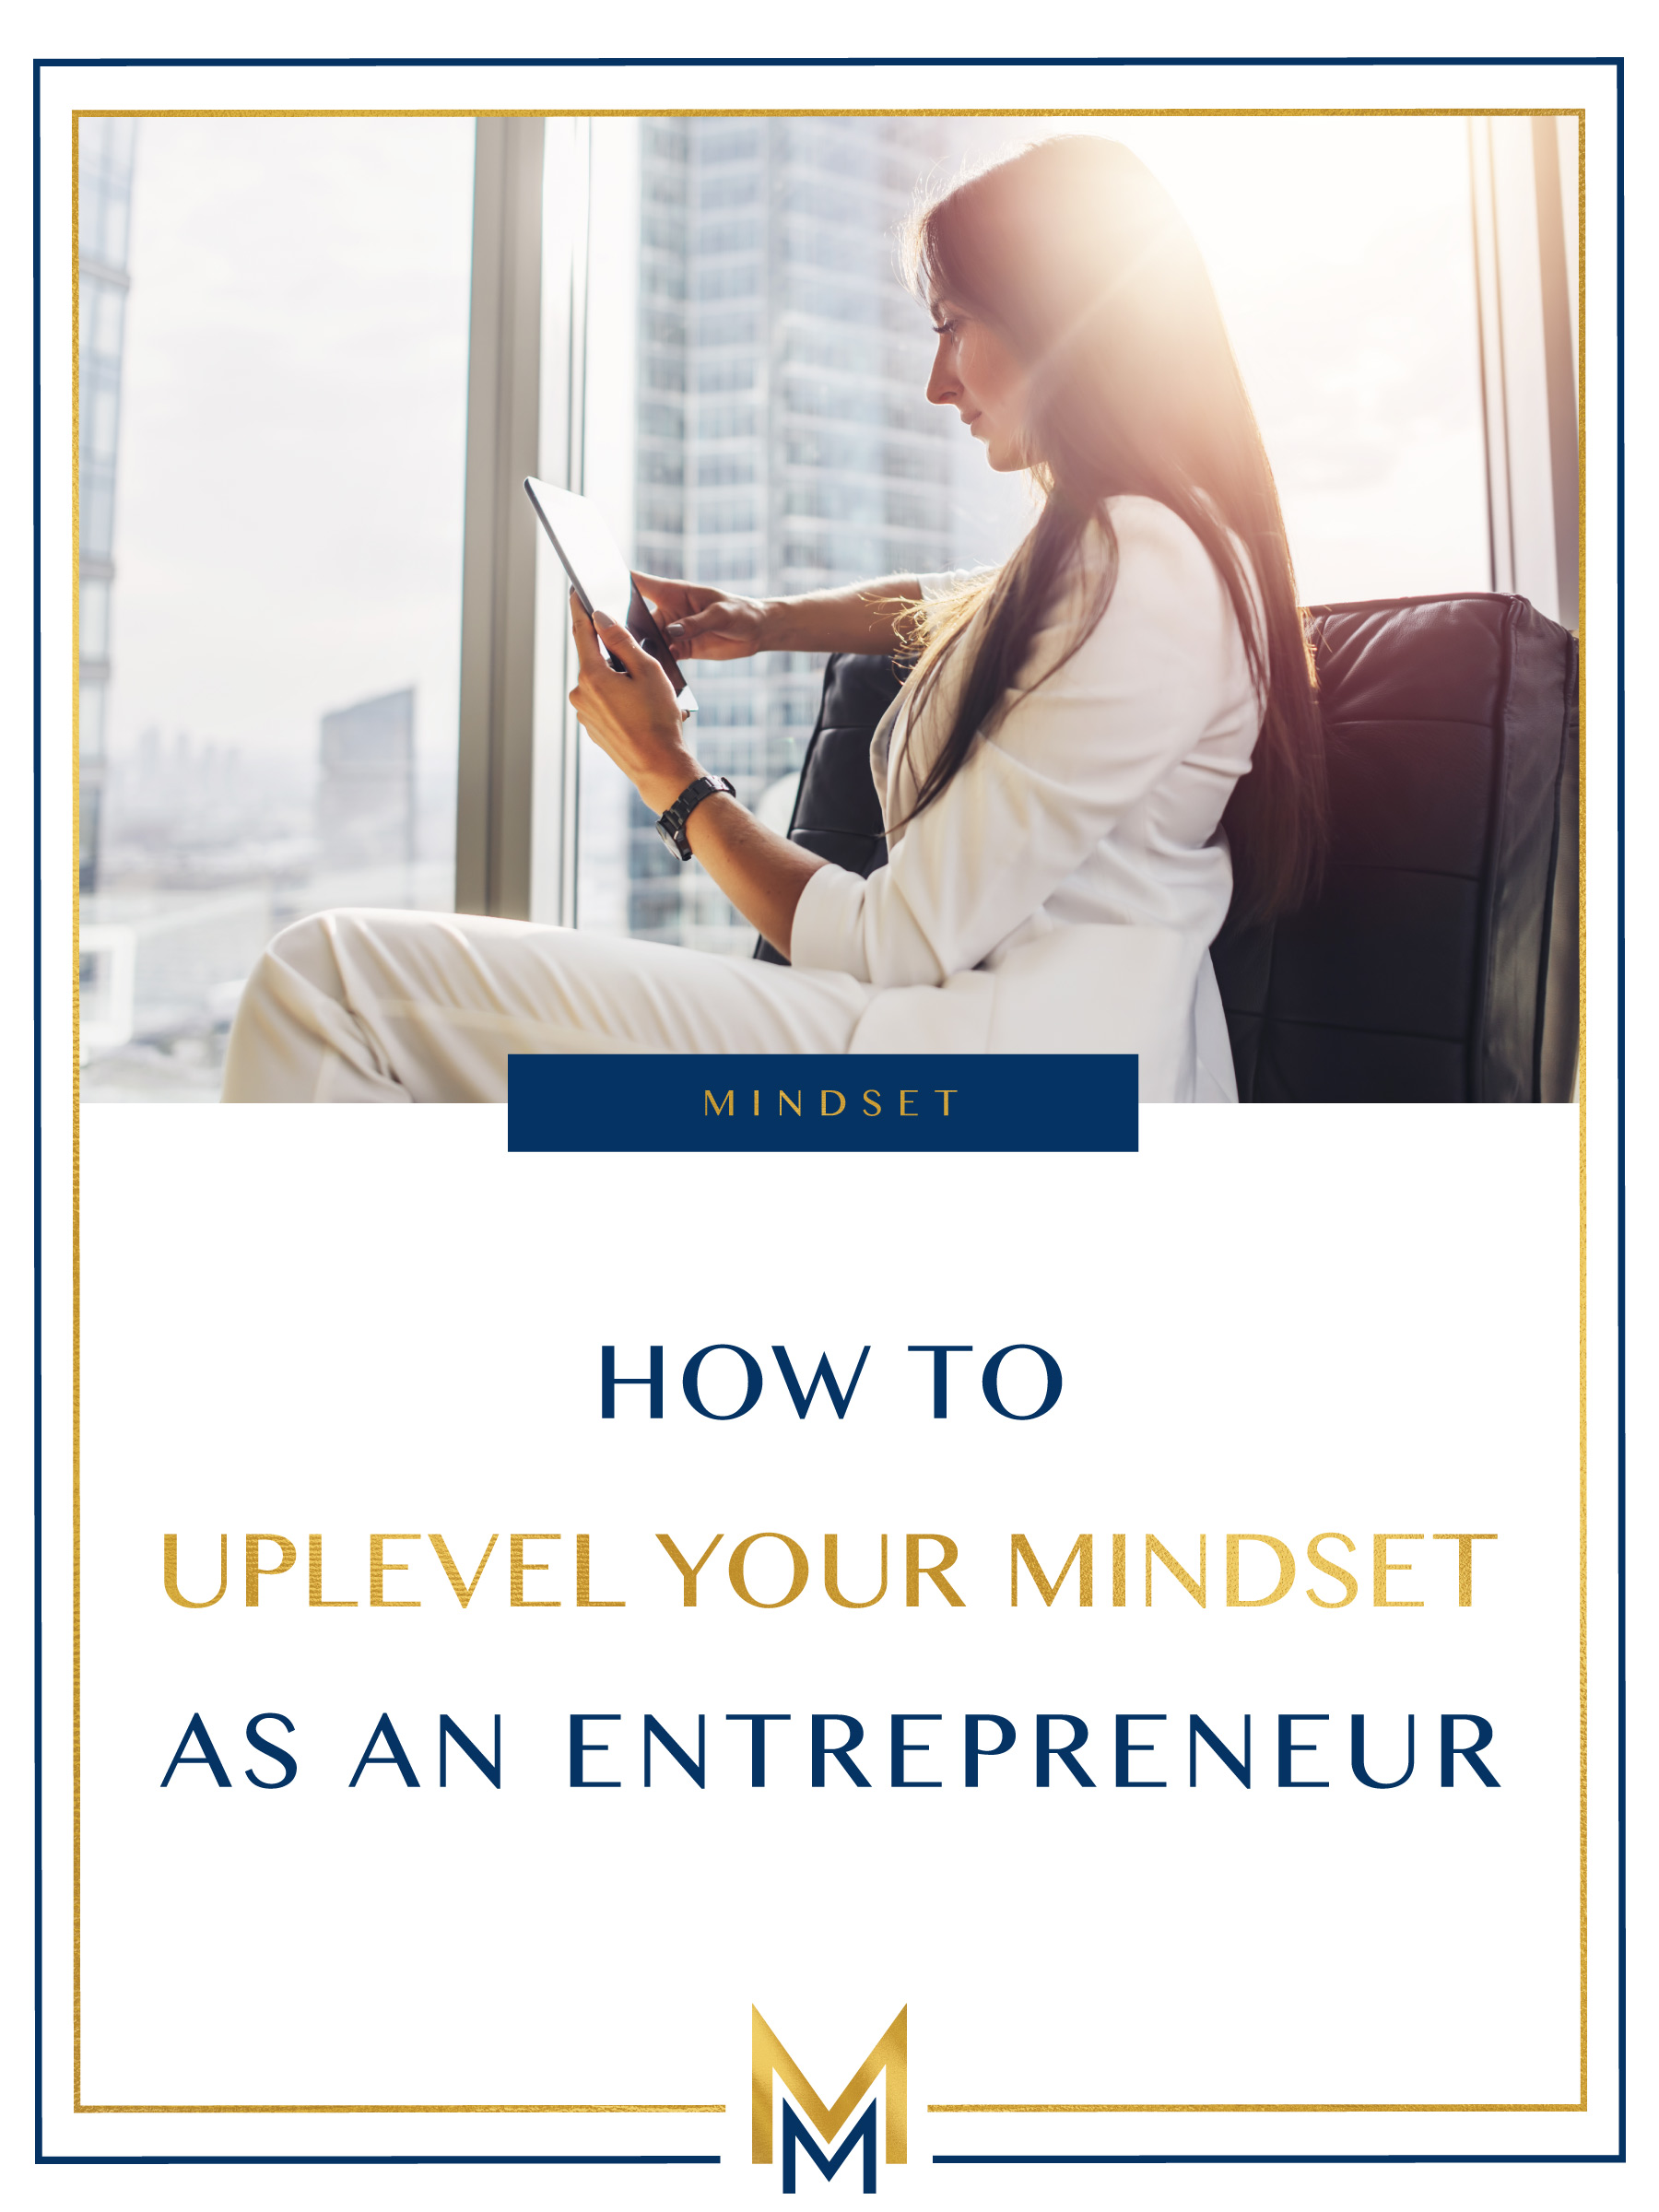 How-to-uplevel-your-mindset-as-an-entrepreneur.jpg